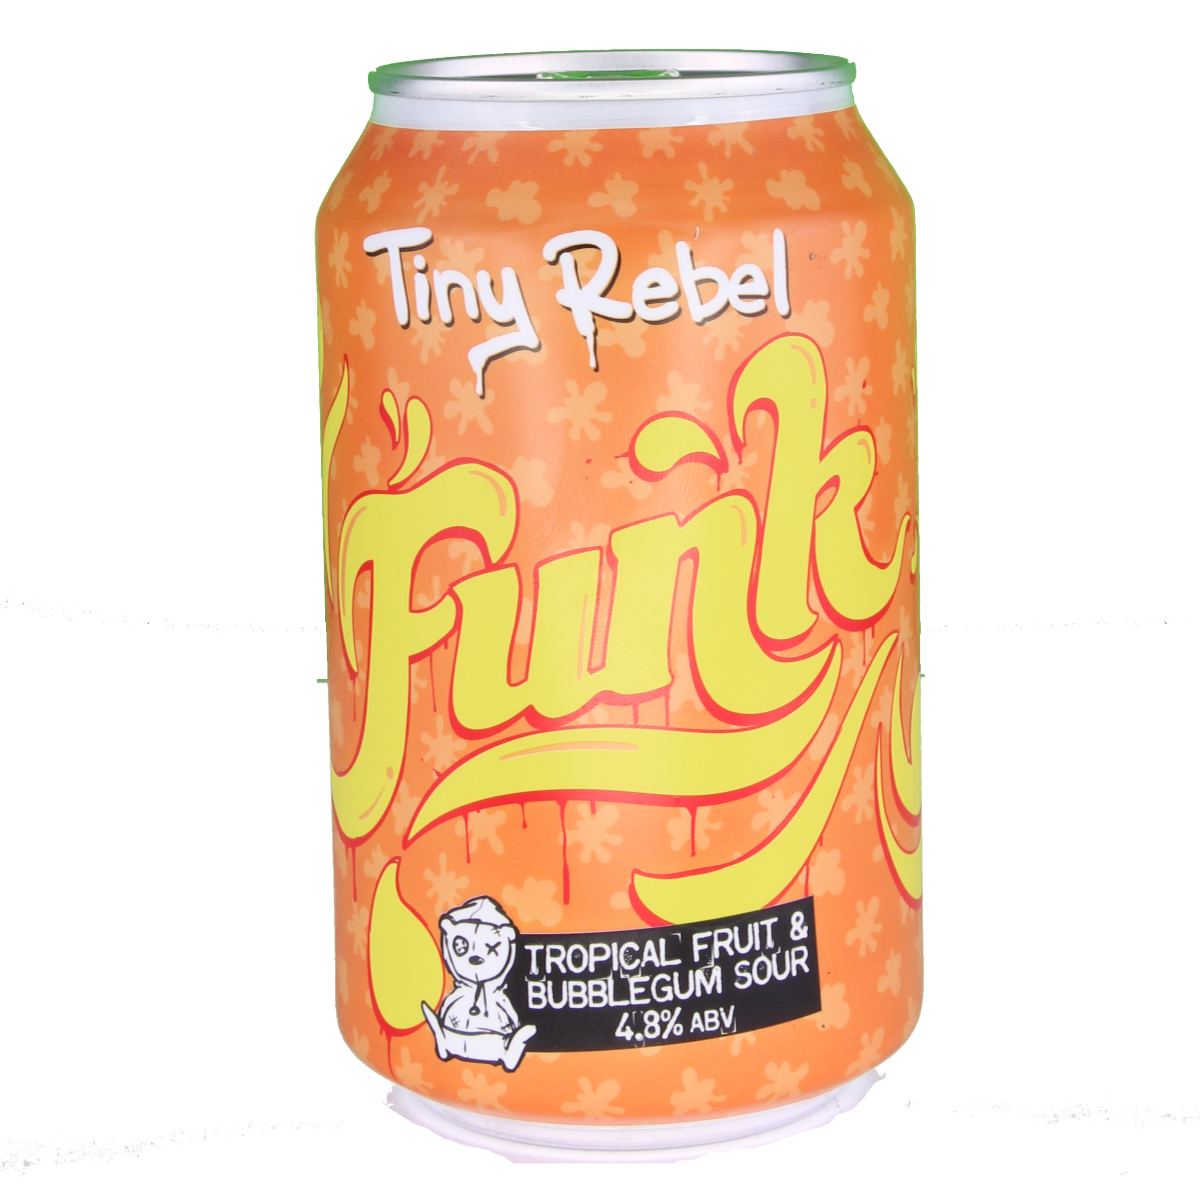 Funk - Tropical Fruit & Bubblegum Sour 4.8%